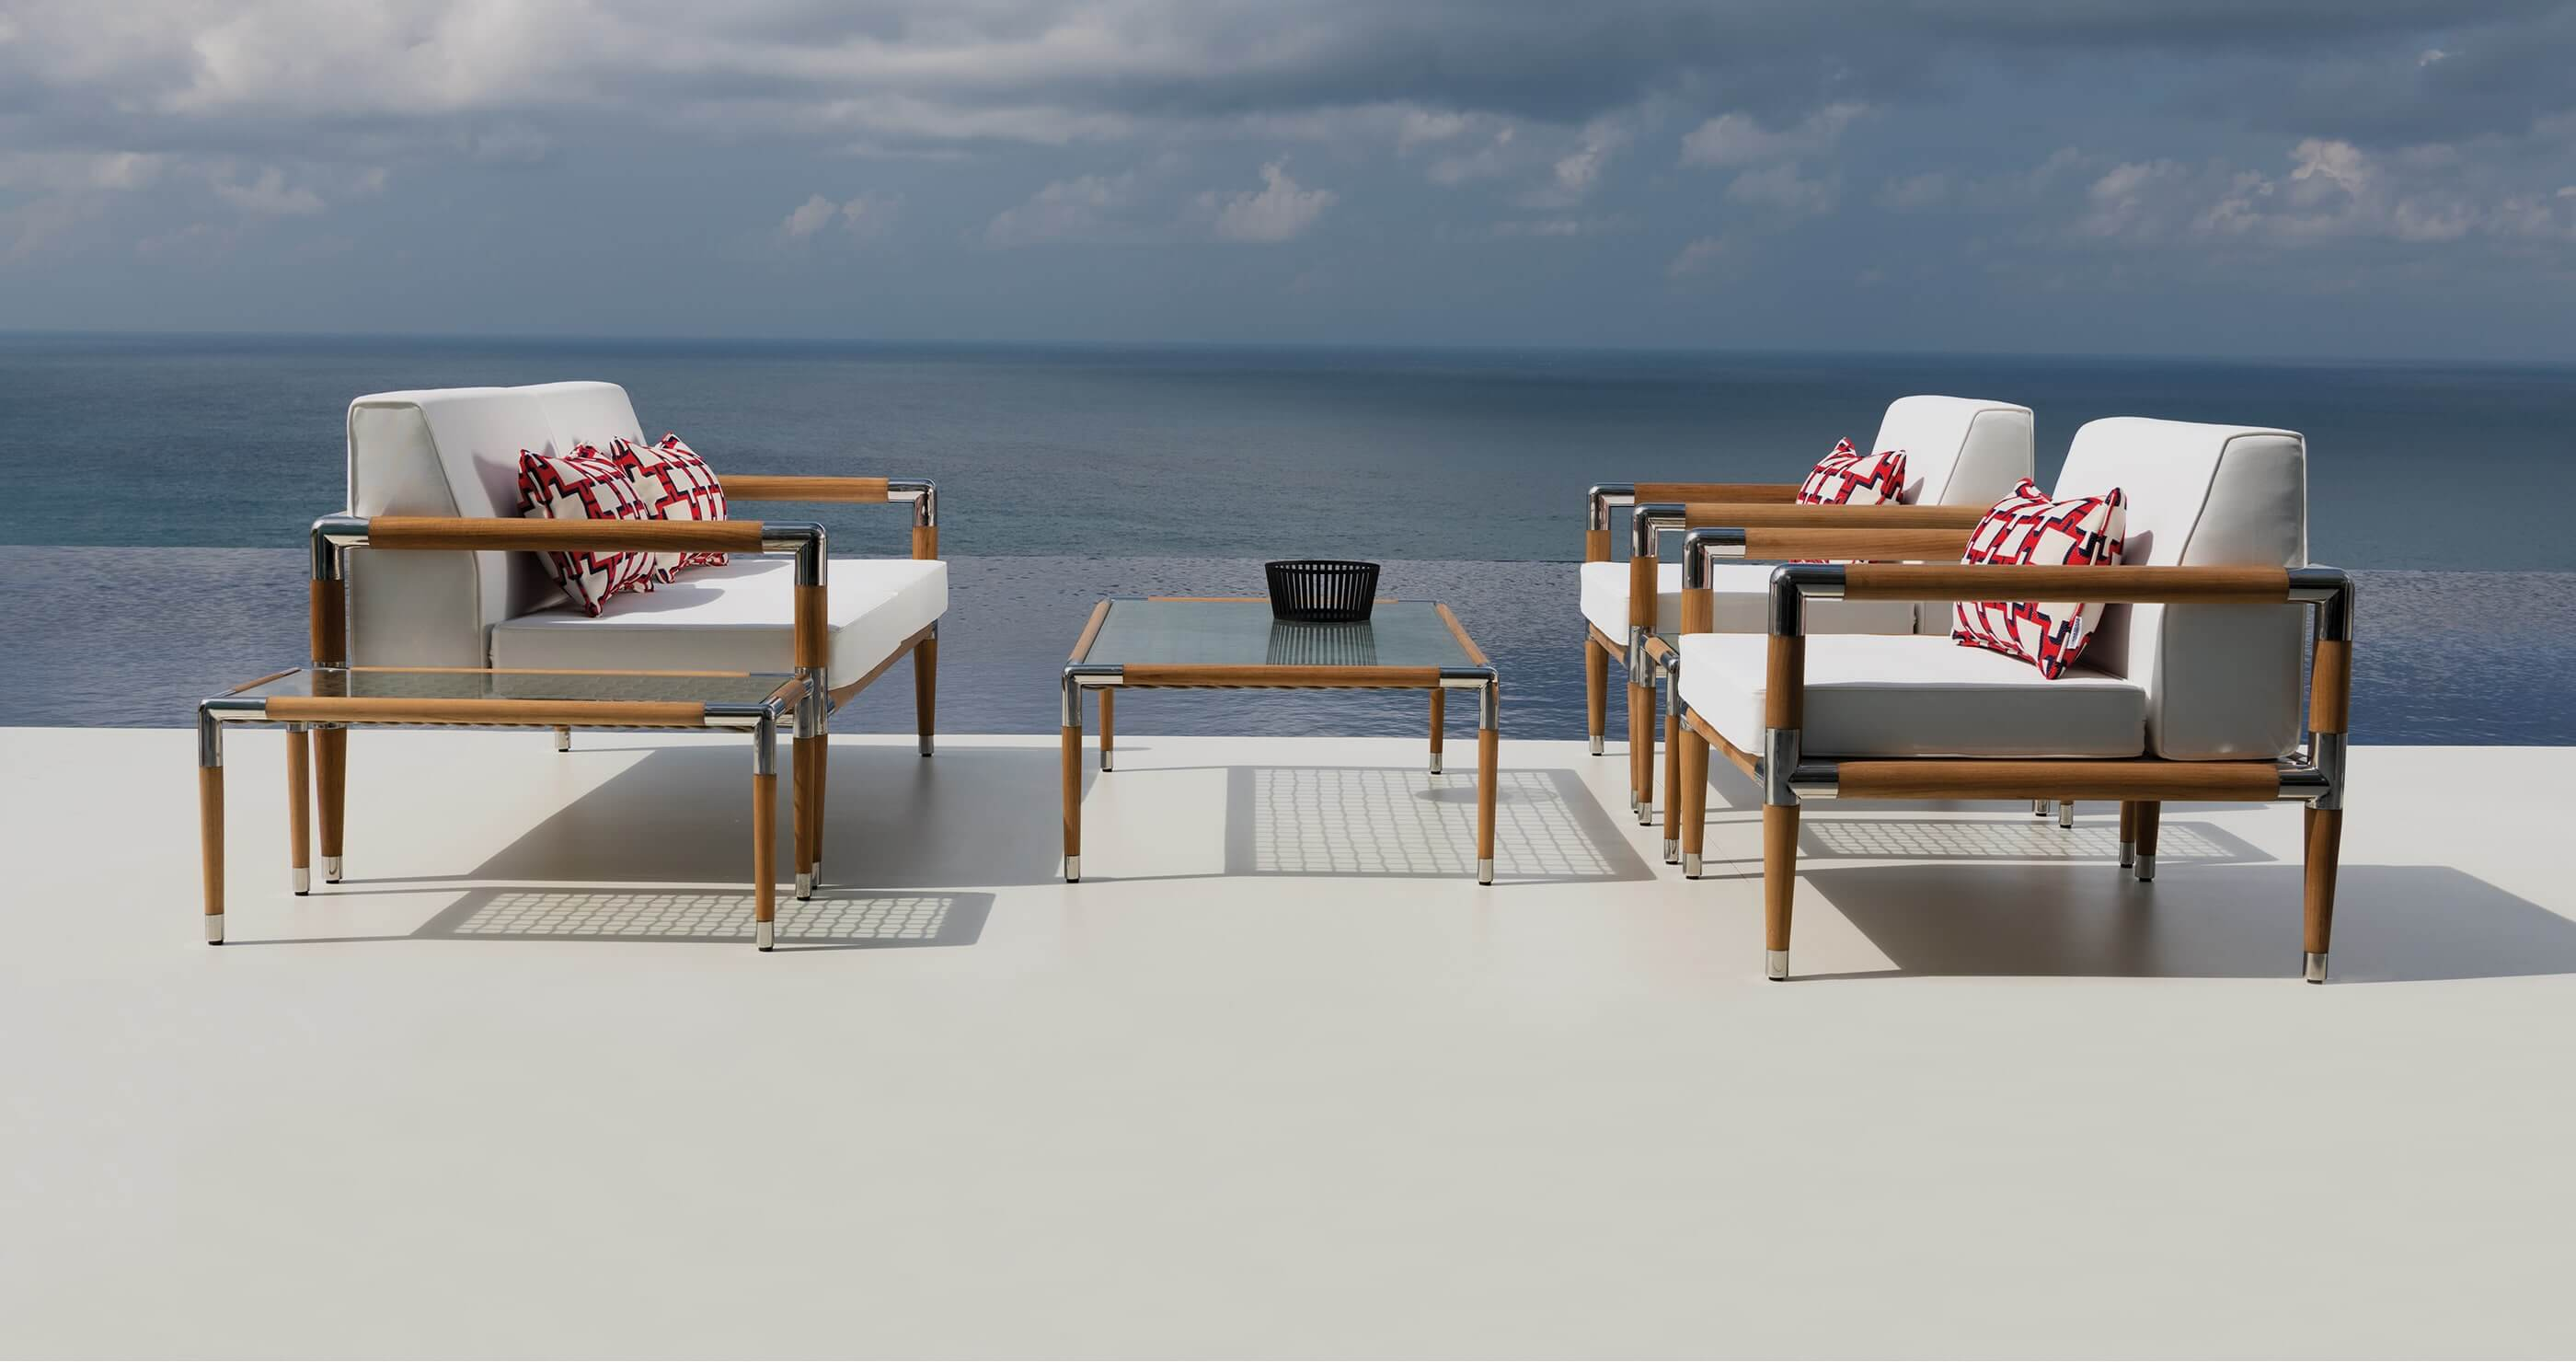 Indian Ocean furniture: luxury outdoor coffee table and chairs with the ocean in the background